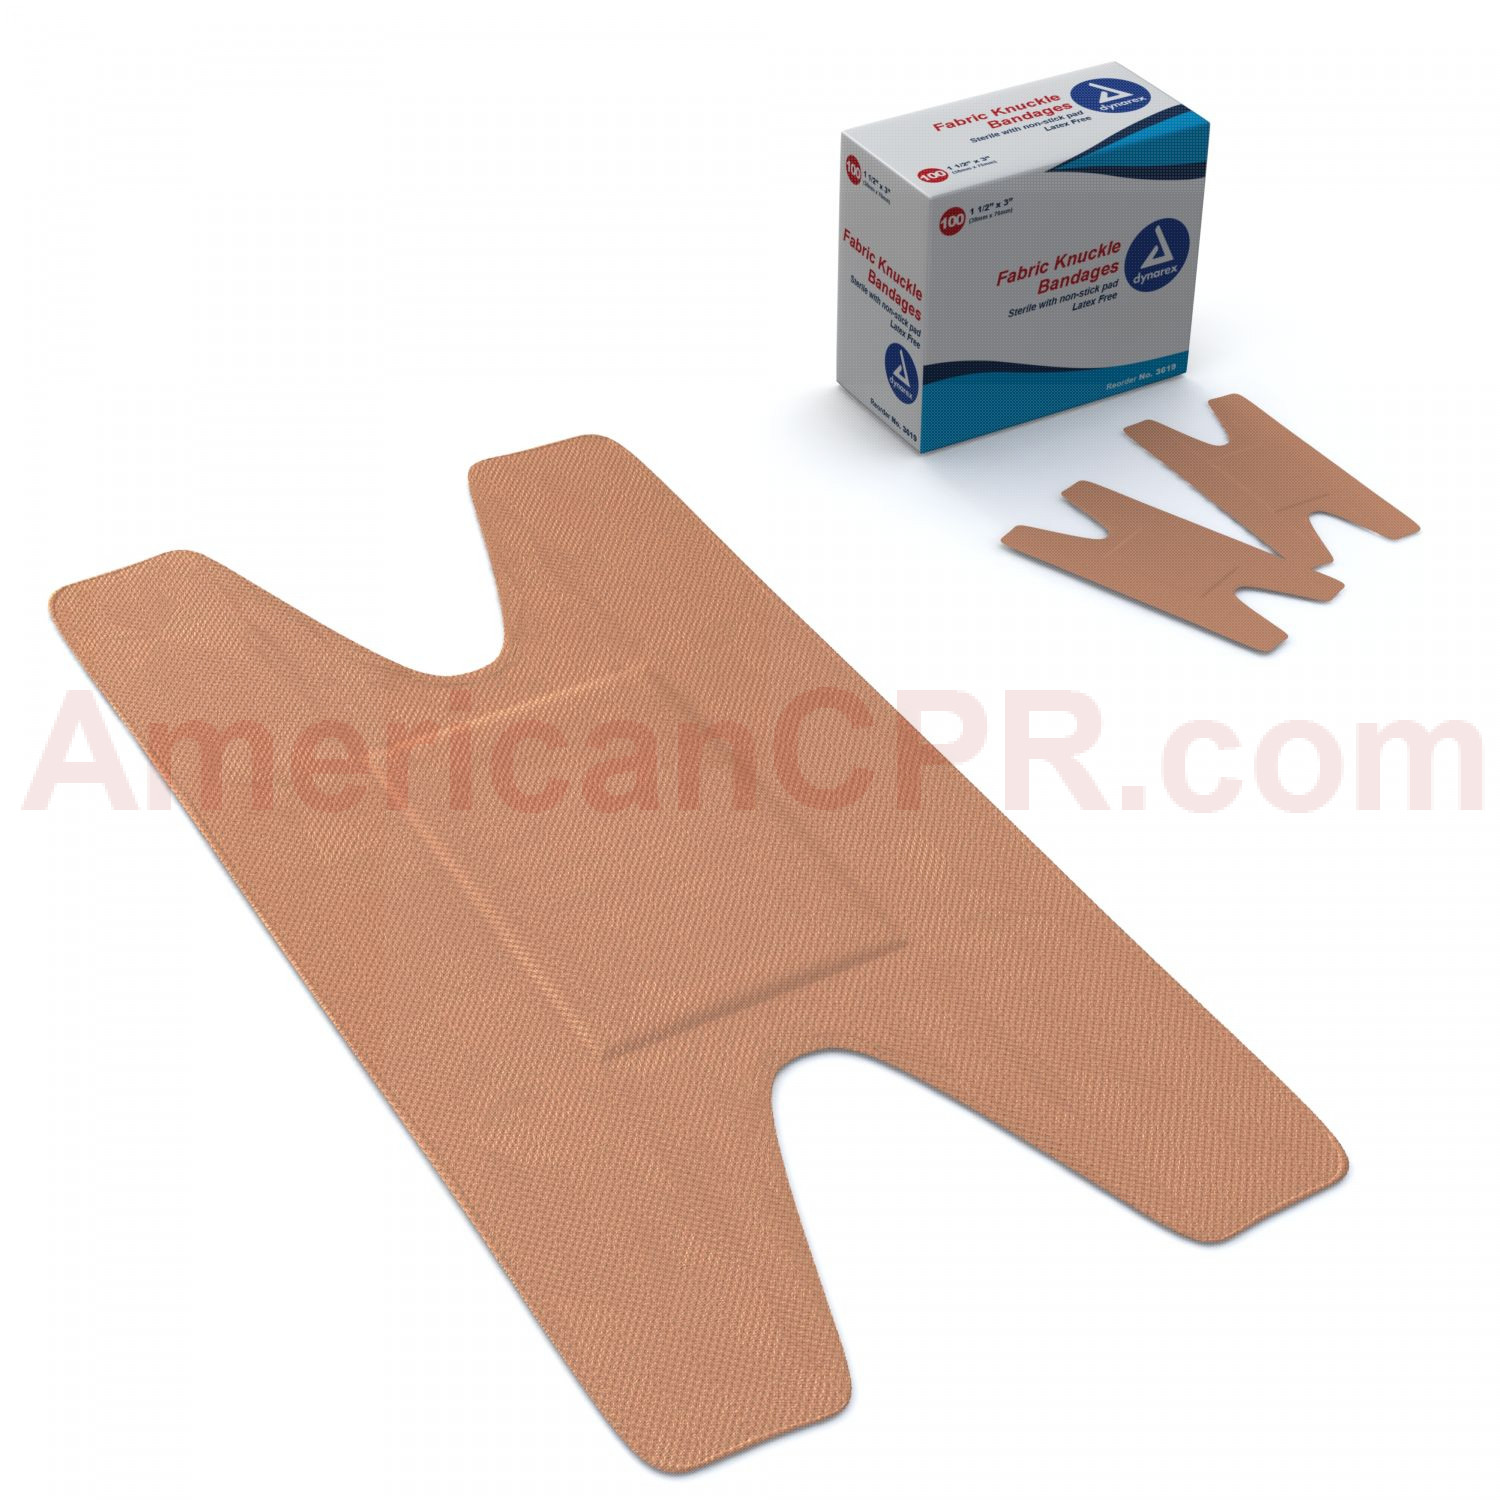 Knuckle Bandage, Fabric - 100 Per Box - Prostat First Aid